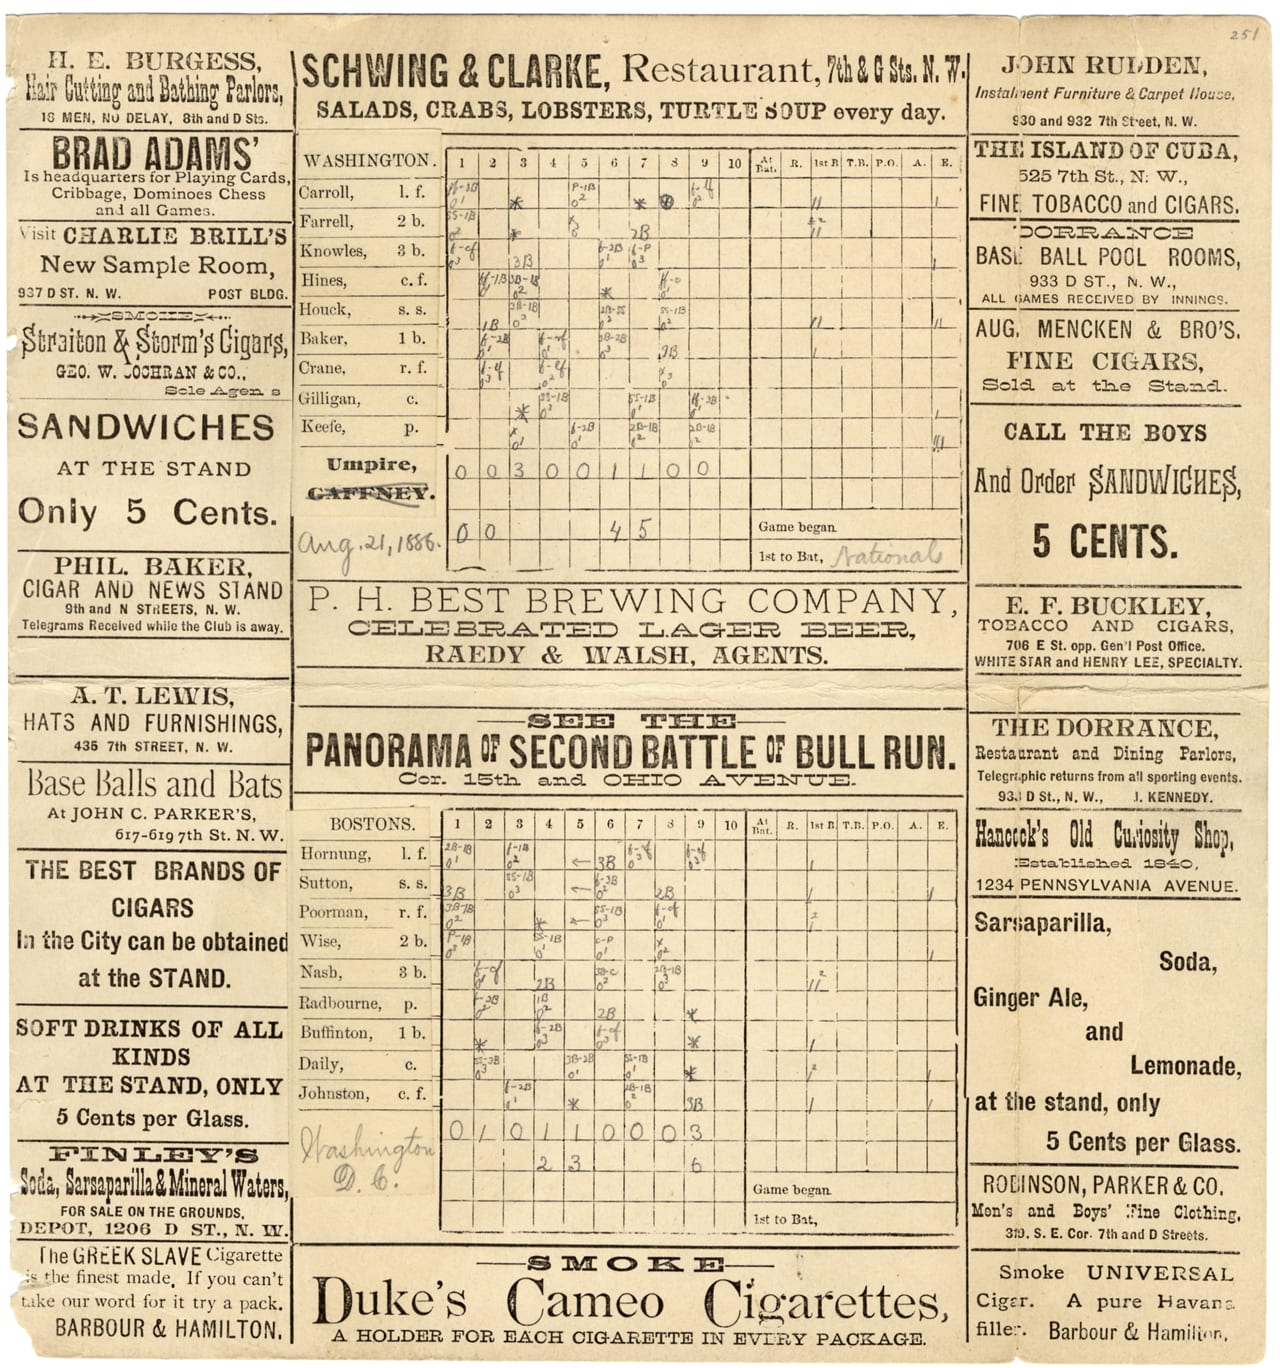 "Scorecard for 1886 baseball game between Washington Nationals and Boston Beaneaters; advertisements printed on borders of card. Printed on card: ""Washington, Bostons."" Handwritten on card: ""Washington, D.C., Aug. 21, 1886."" Penciled notations on scorecard."